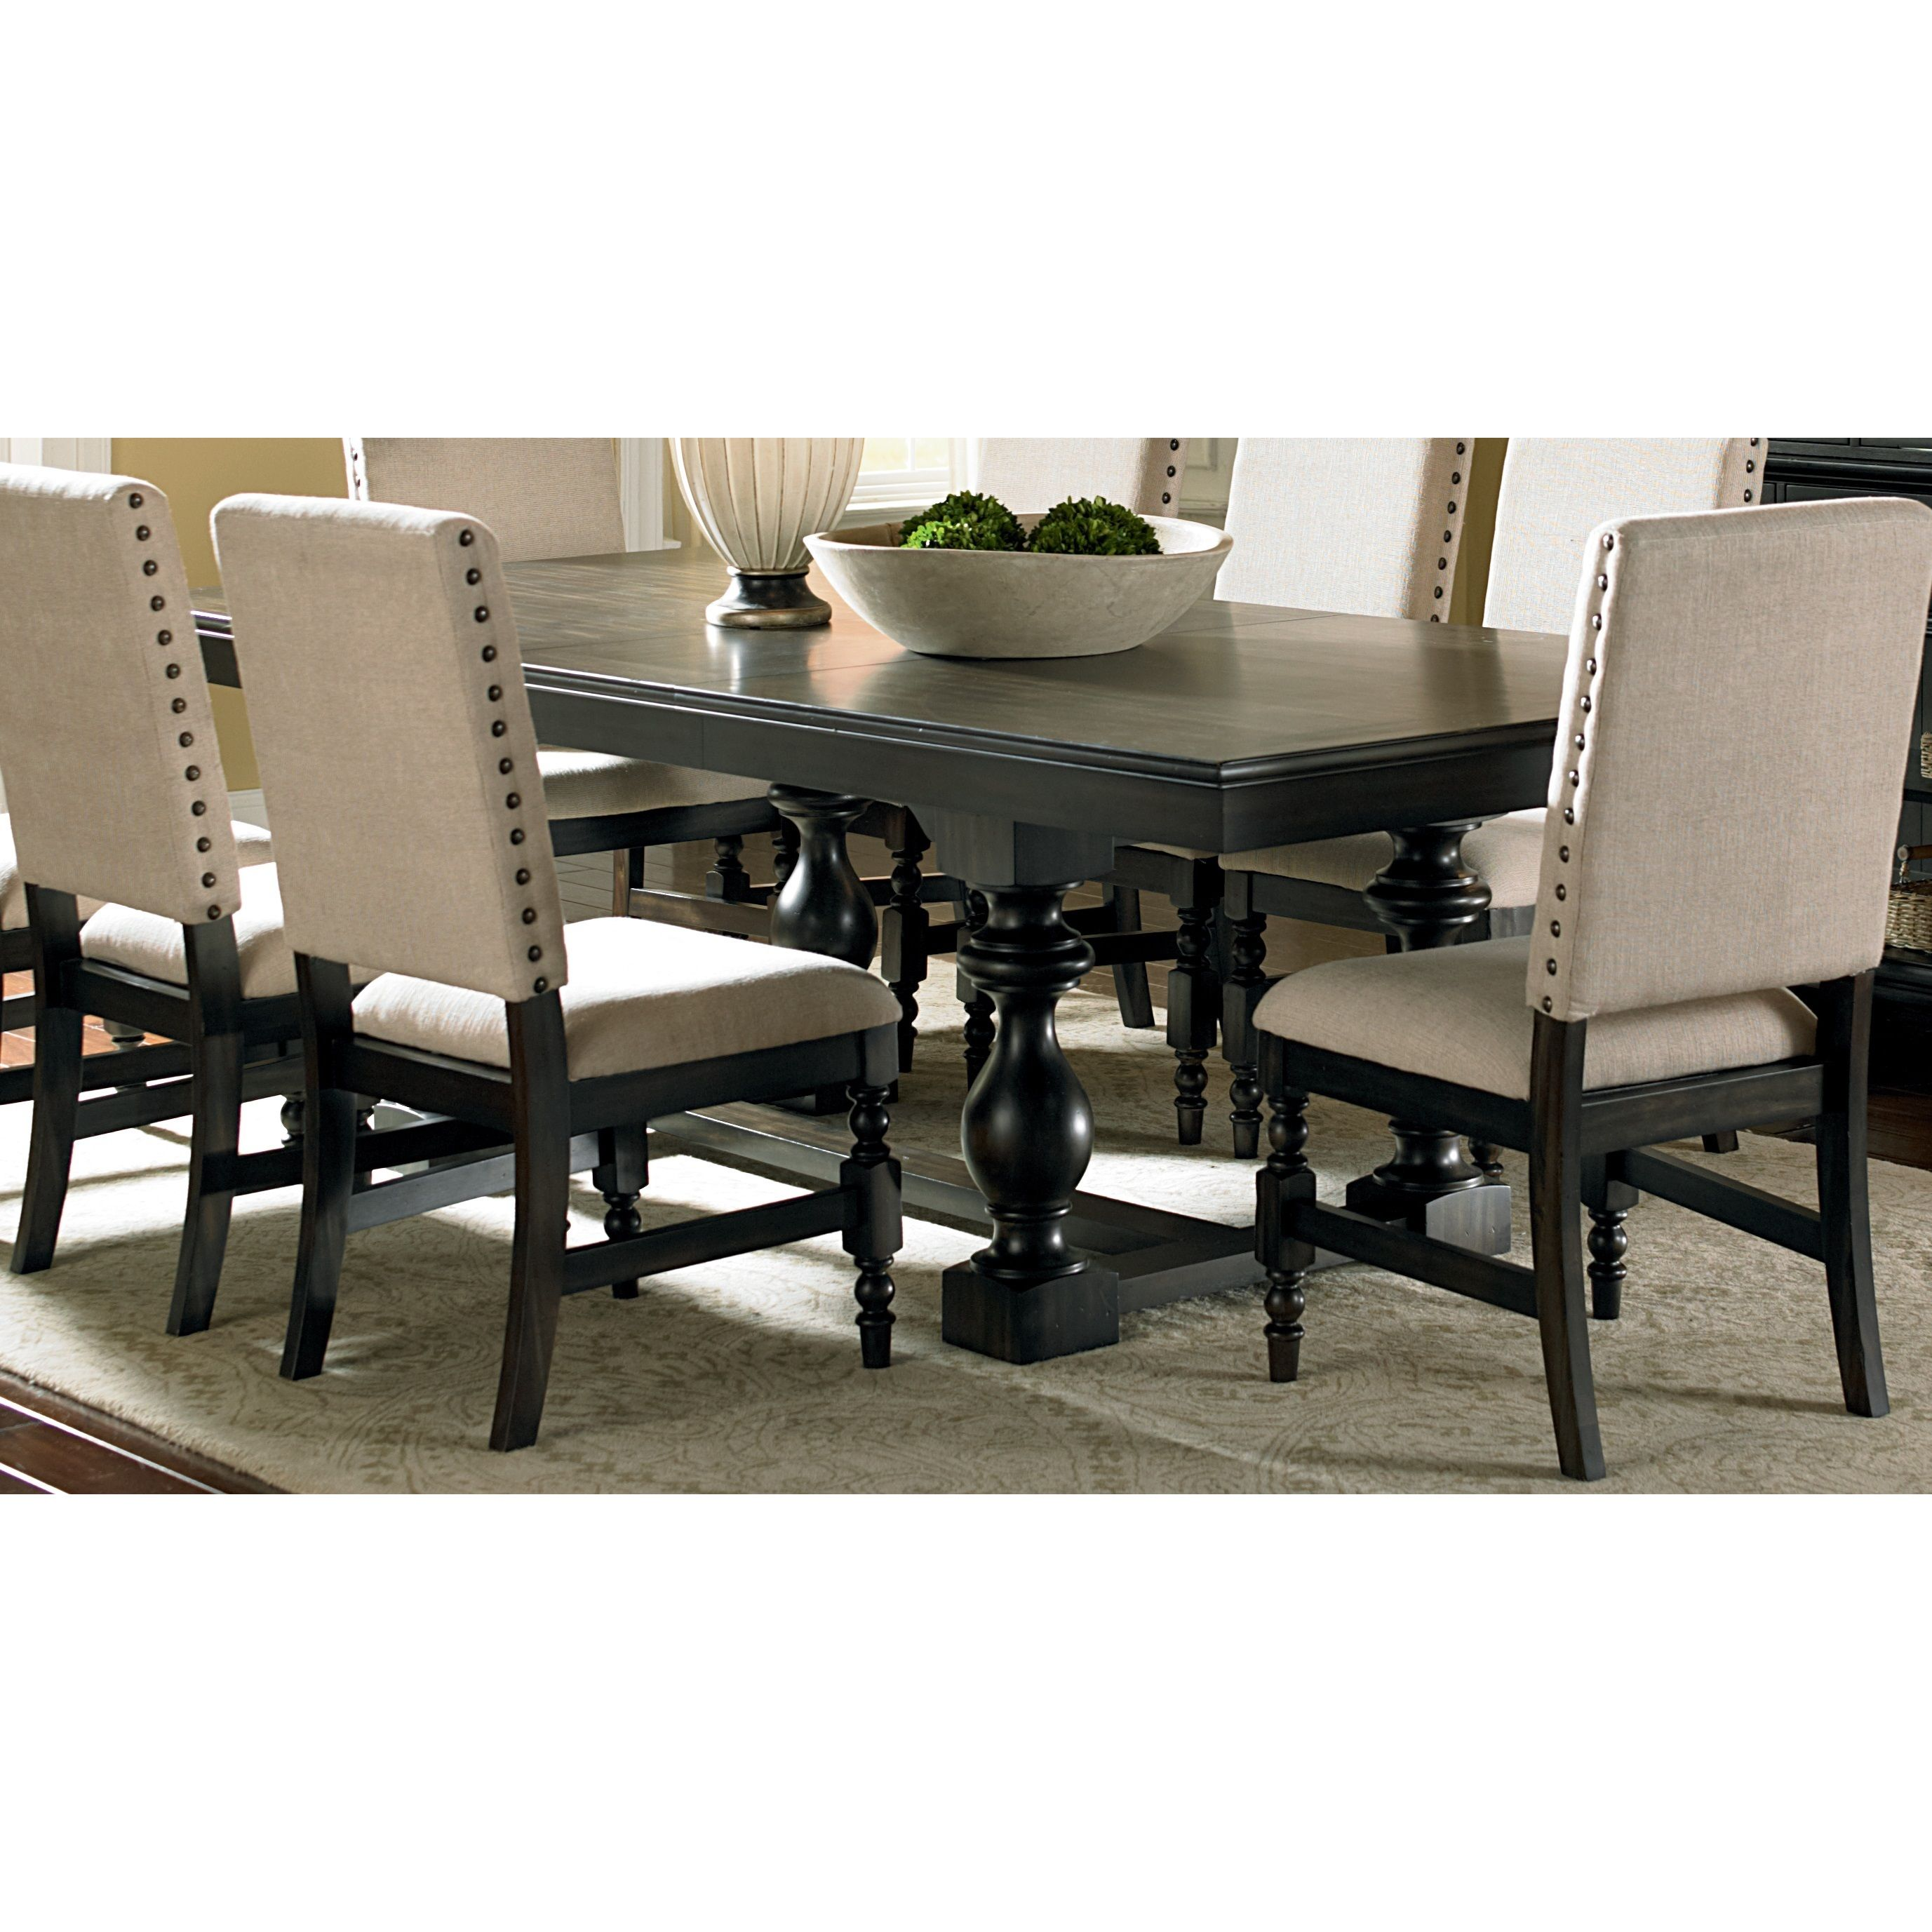 Share a meal or just a good conversation around the for Just dining tables